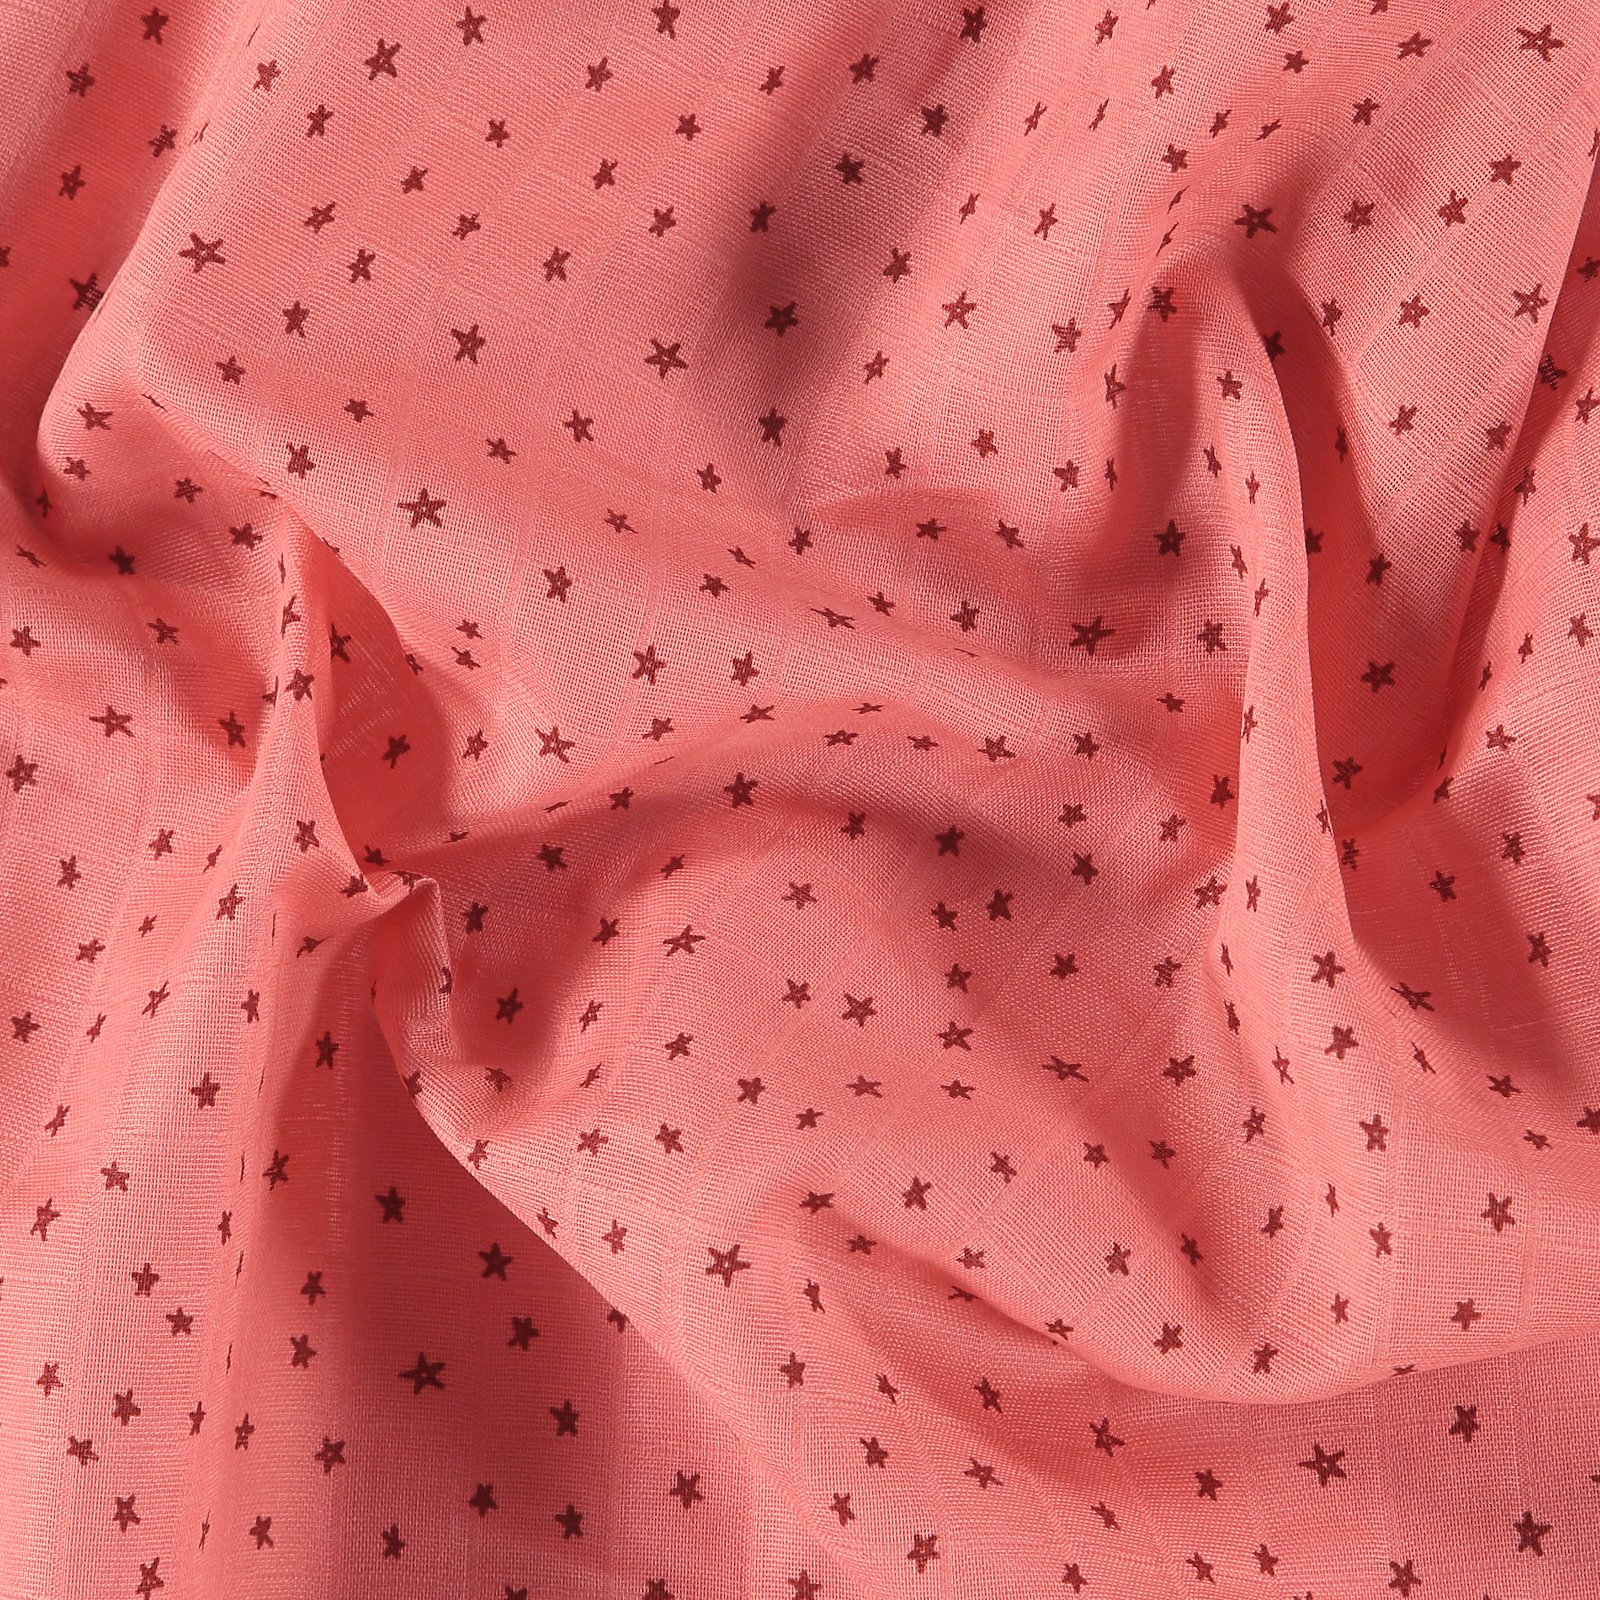 Muslin warm rose with stars 501862_pack